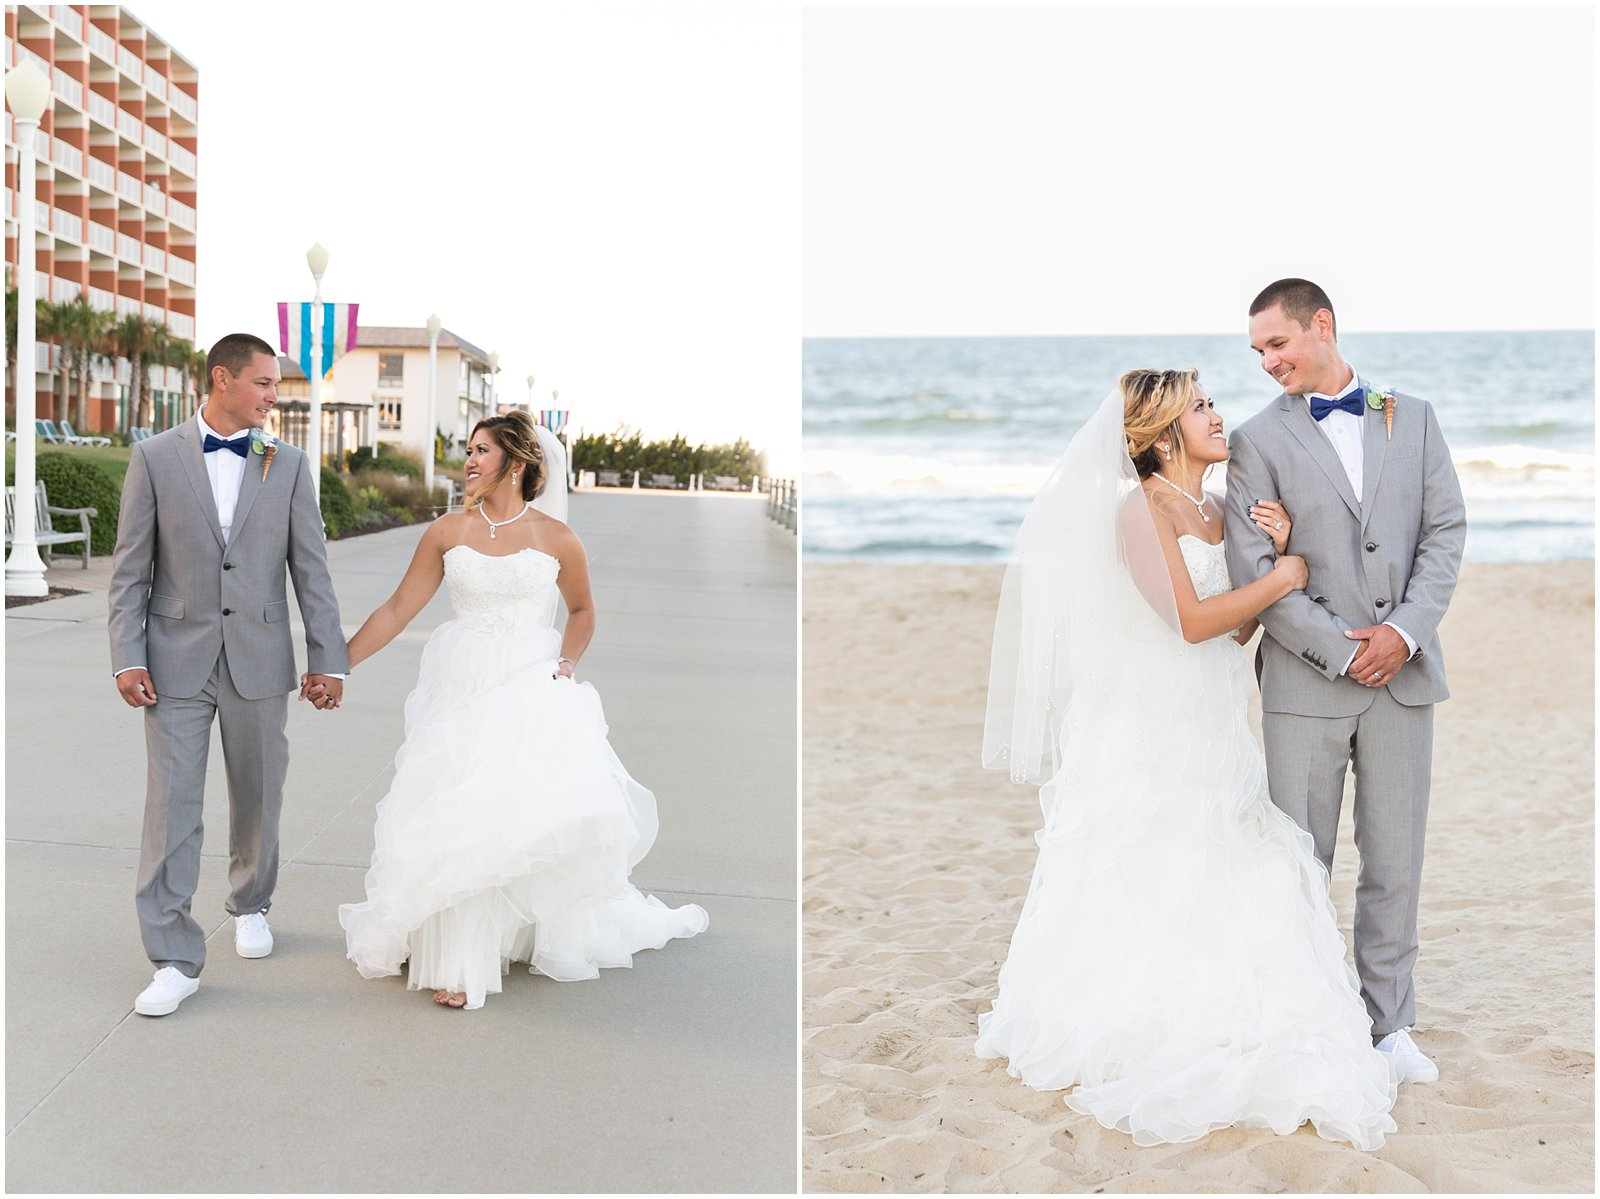 jessica_ryan_photography_wedding_virginia_beach_virginia_wedding_photographer_candid_wedding_photography_lifestyle_photojournalistic_real_moments_0123